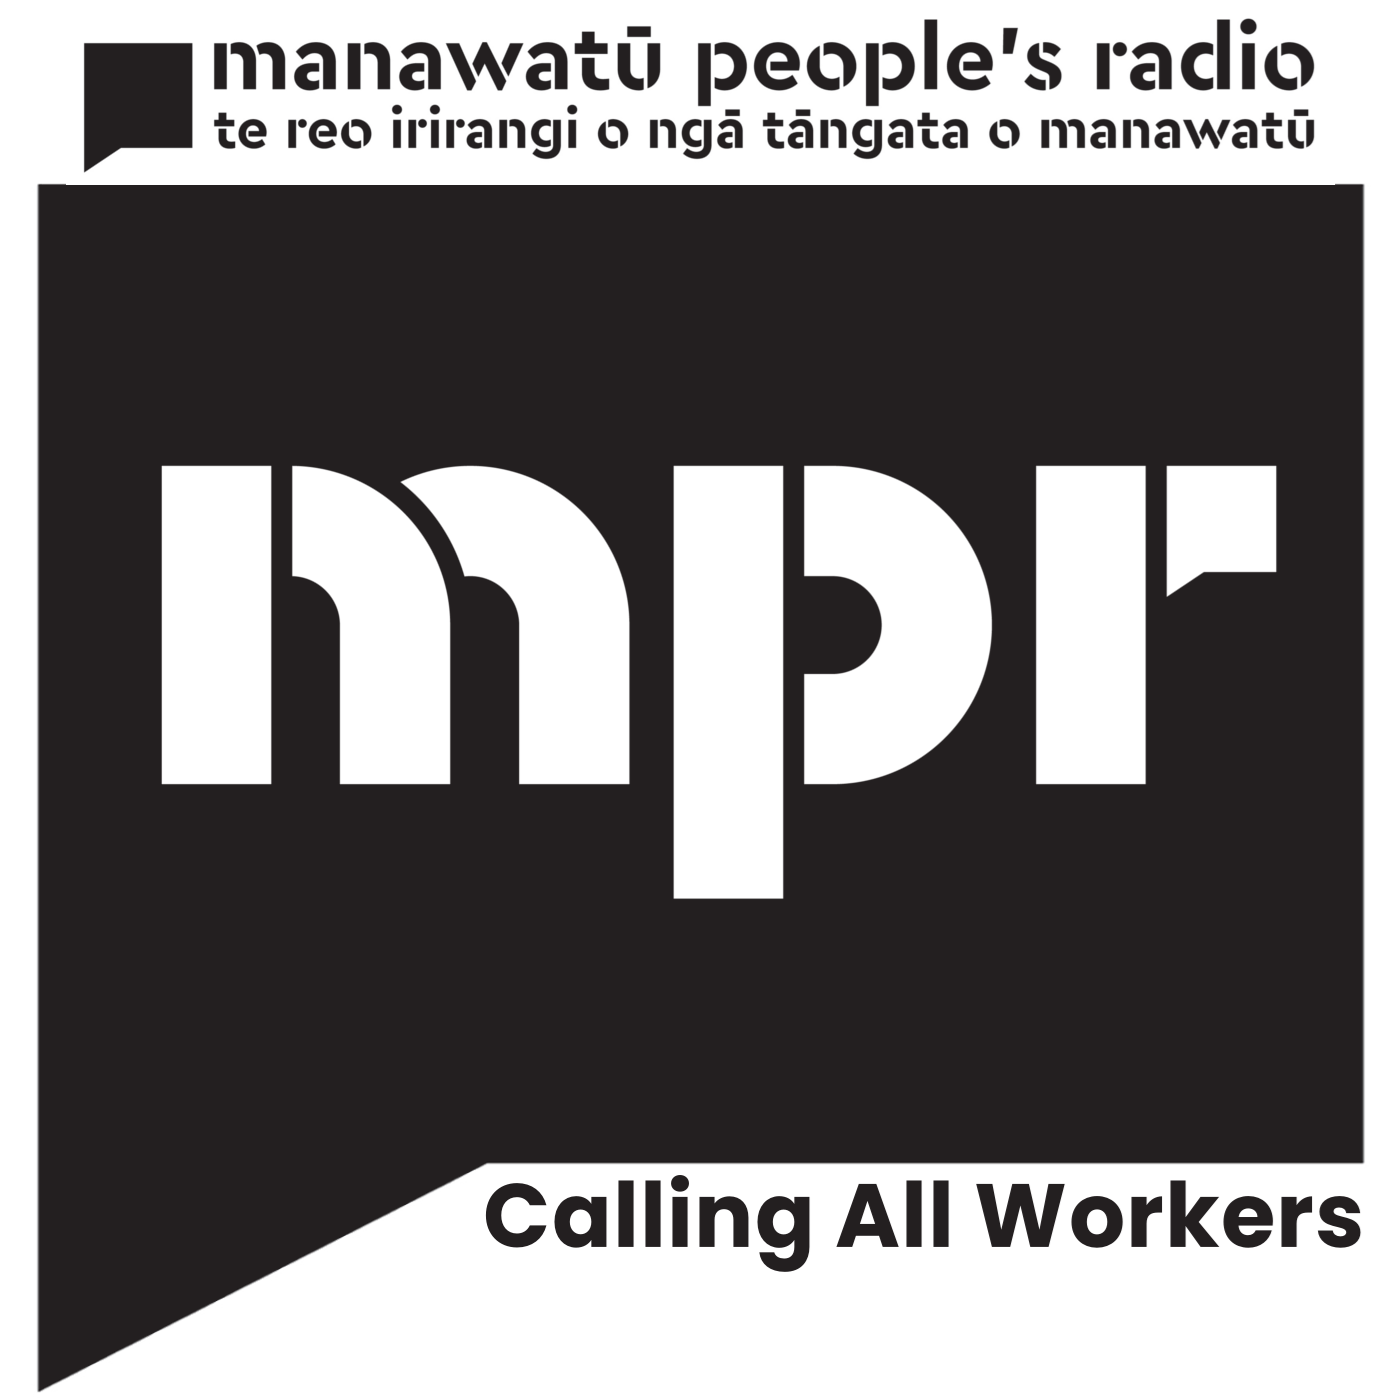 https://cdn.accessradio.org/StationFolder/manawatu/Images/MPRCallingAllWorkers.png